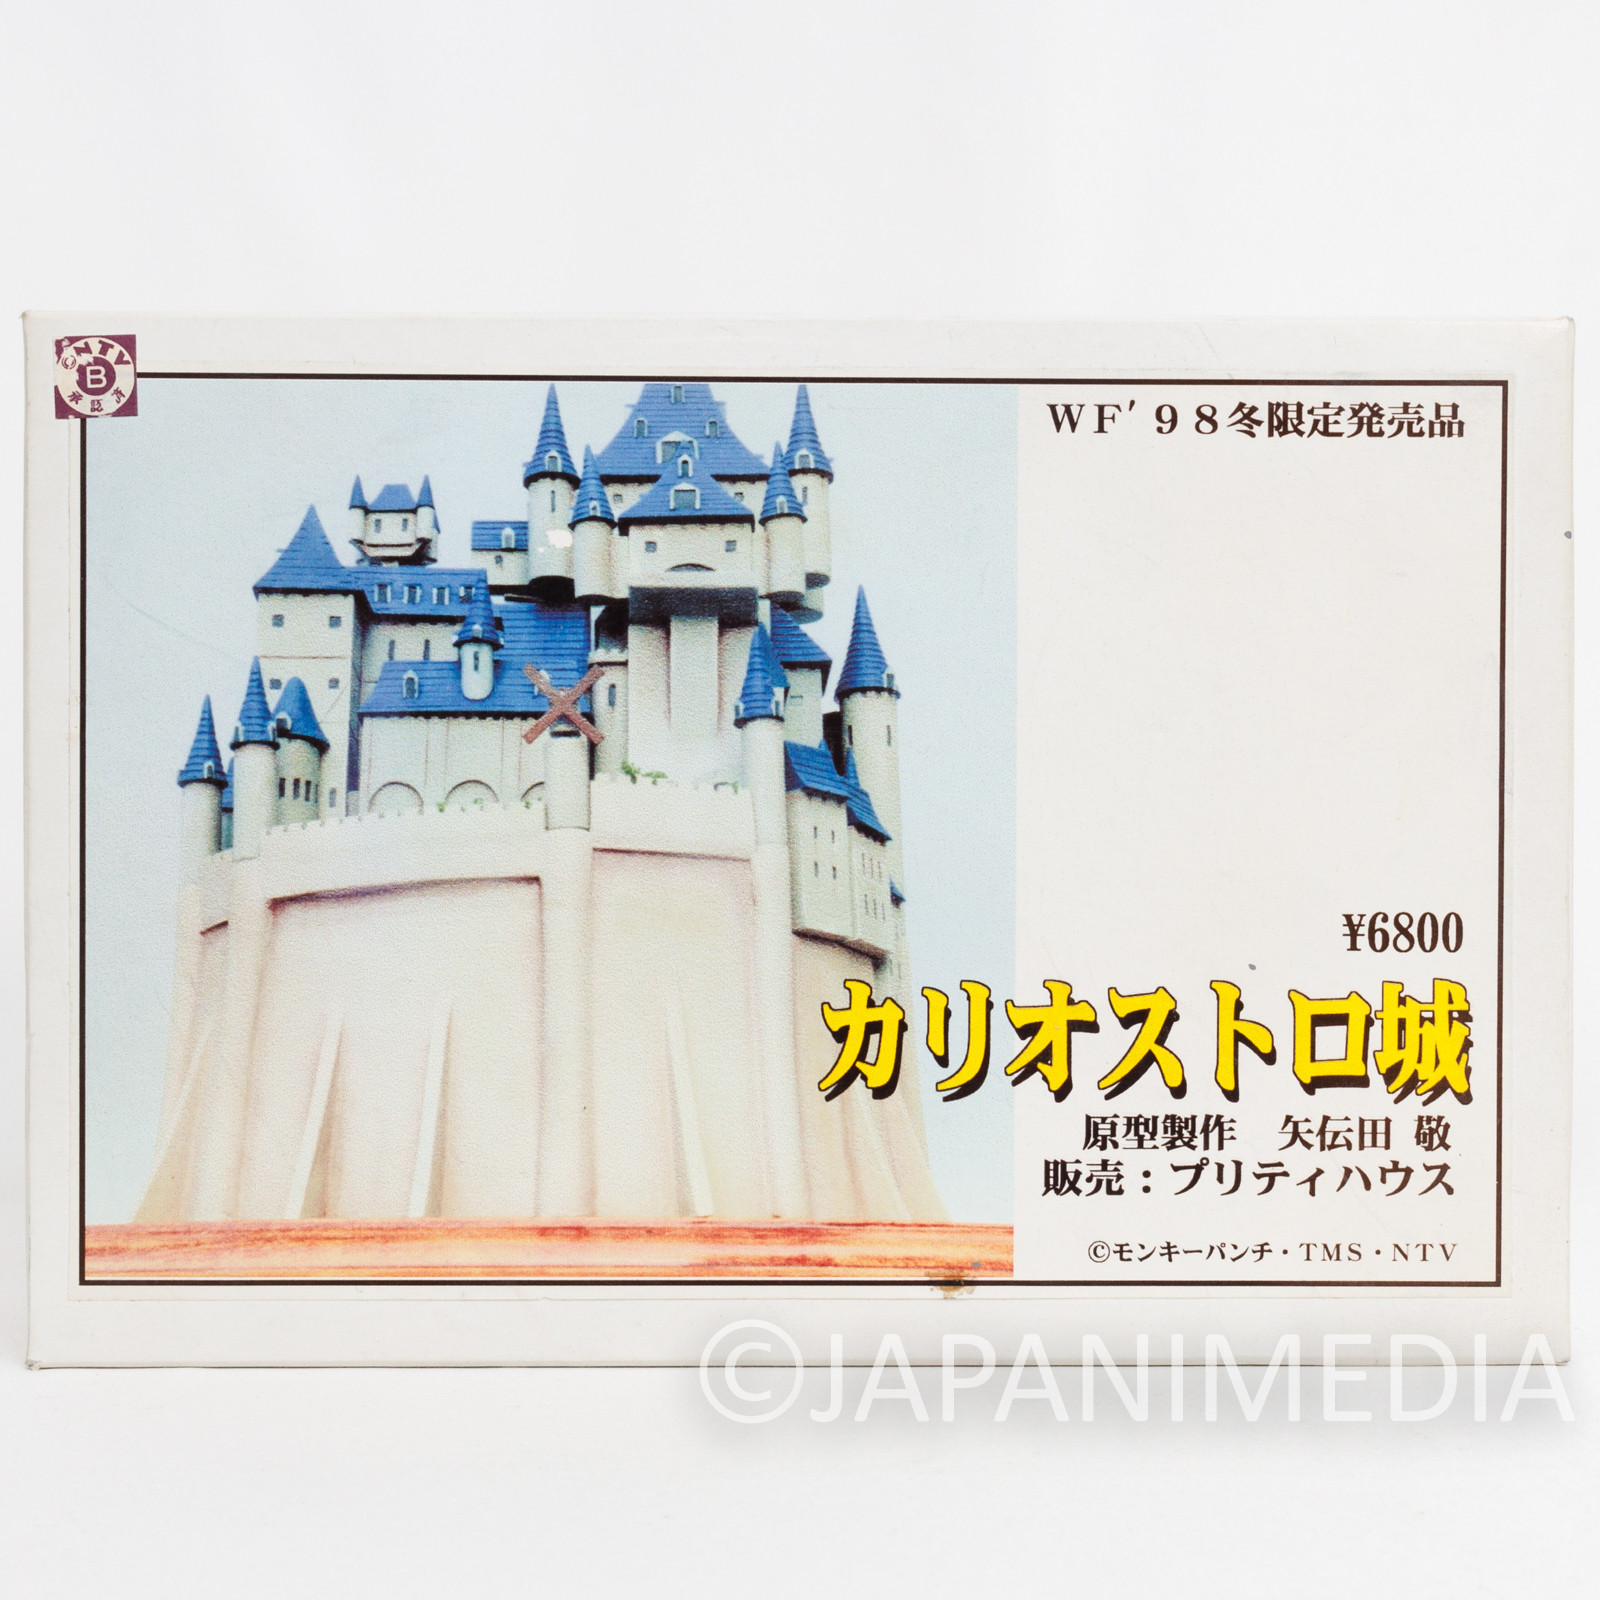 RARE!! Lupin the Third The Castle of Cagliostro Resin Cast Model Kit WF1998